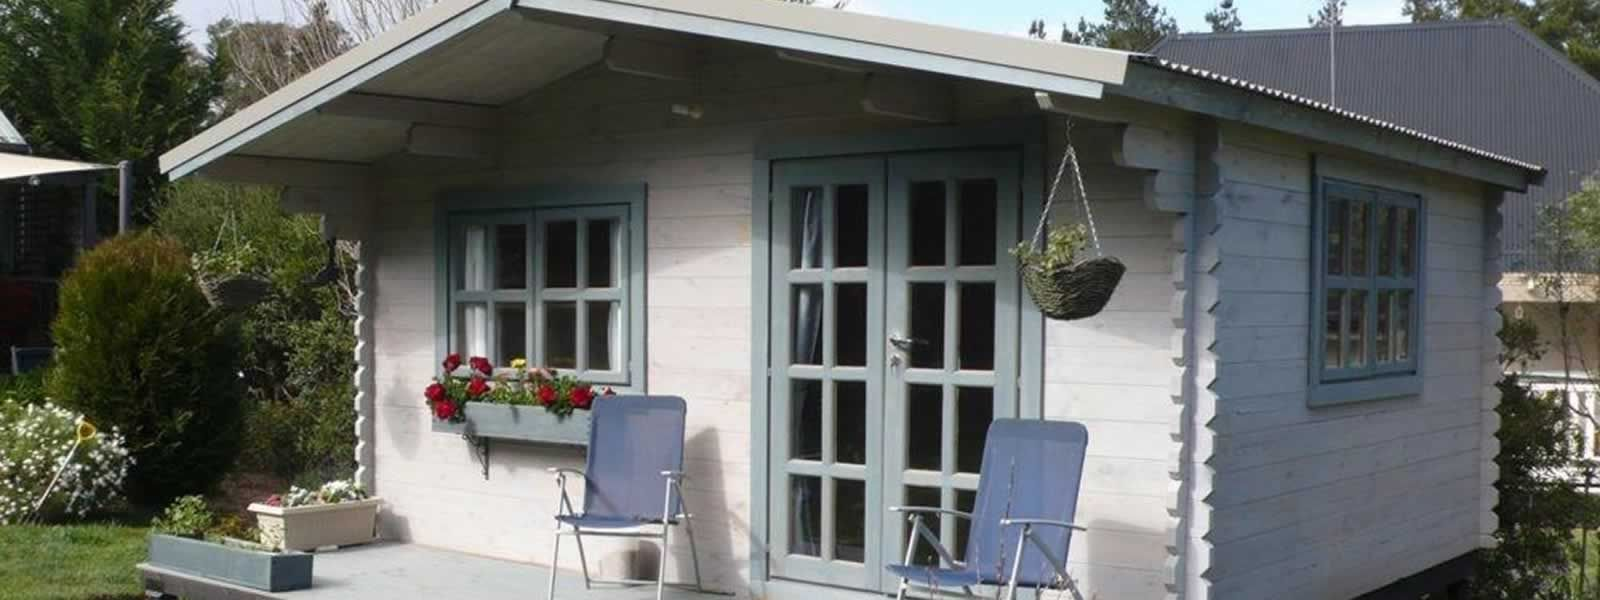 backyard log cabins for sale sydney well insulated good looking